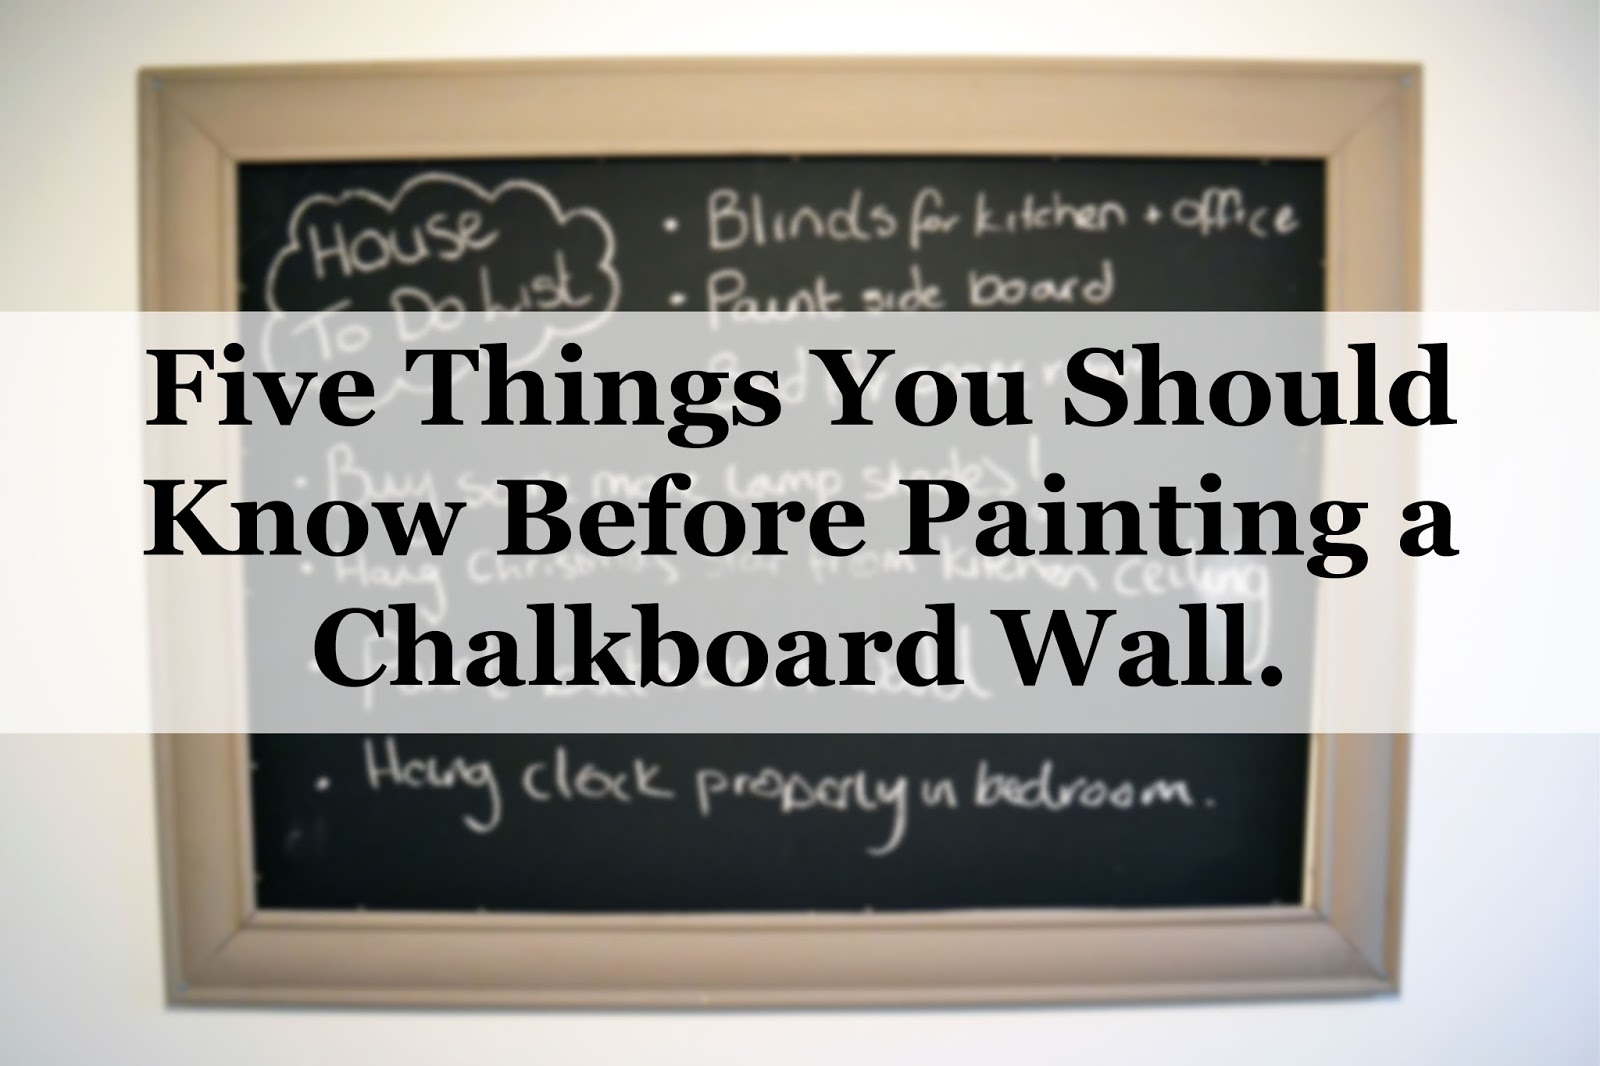 How To Make A Chalkboard Wall Without Paint